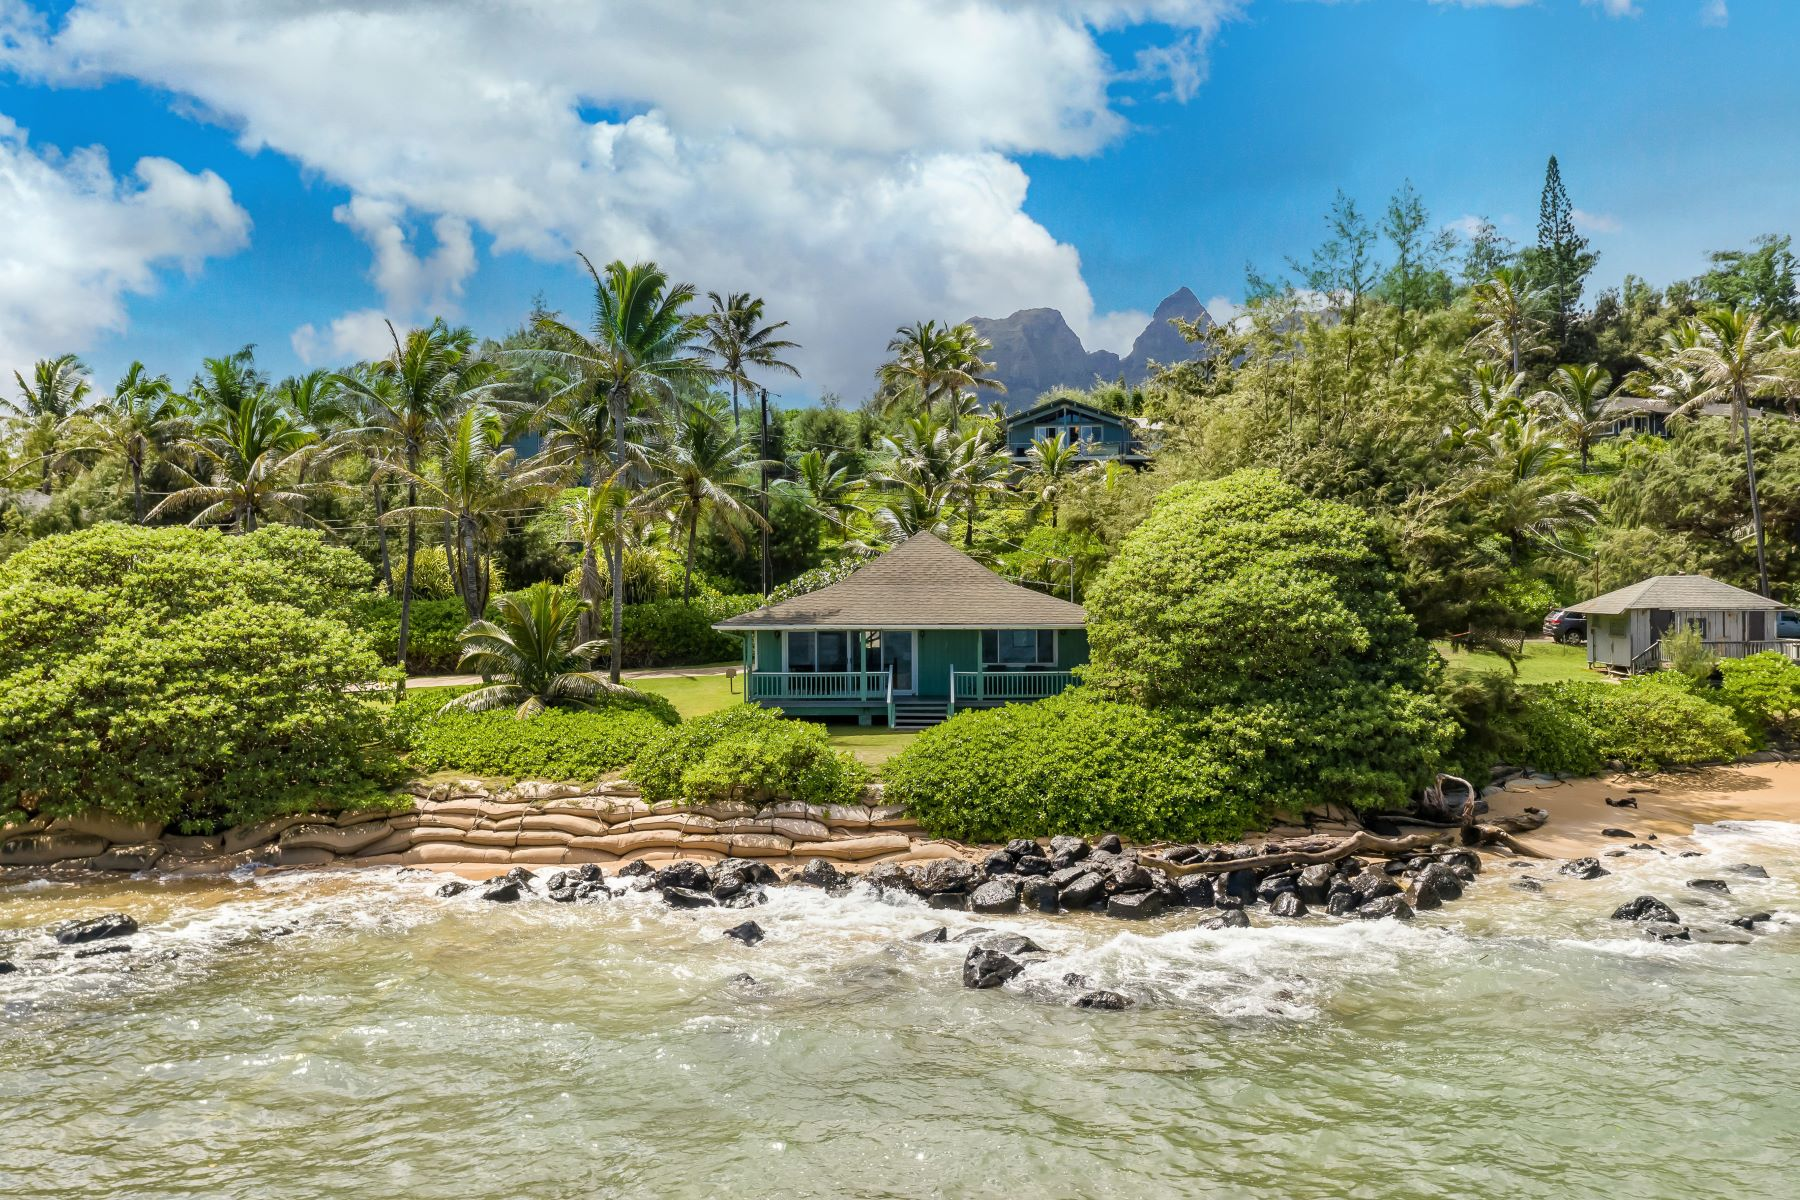 Single Family Homes for Sale at 4888 ALIOMANU RD #2 ANAHOLA, HI 96703 4888 ALIOMANU RD #2 Anahola, Hawaii 96703 United States